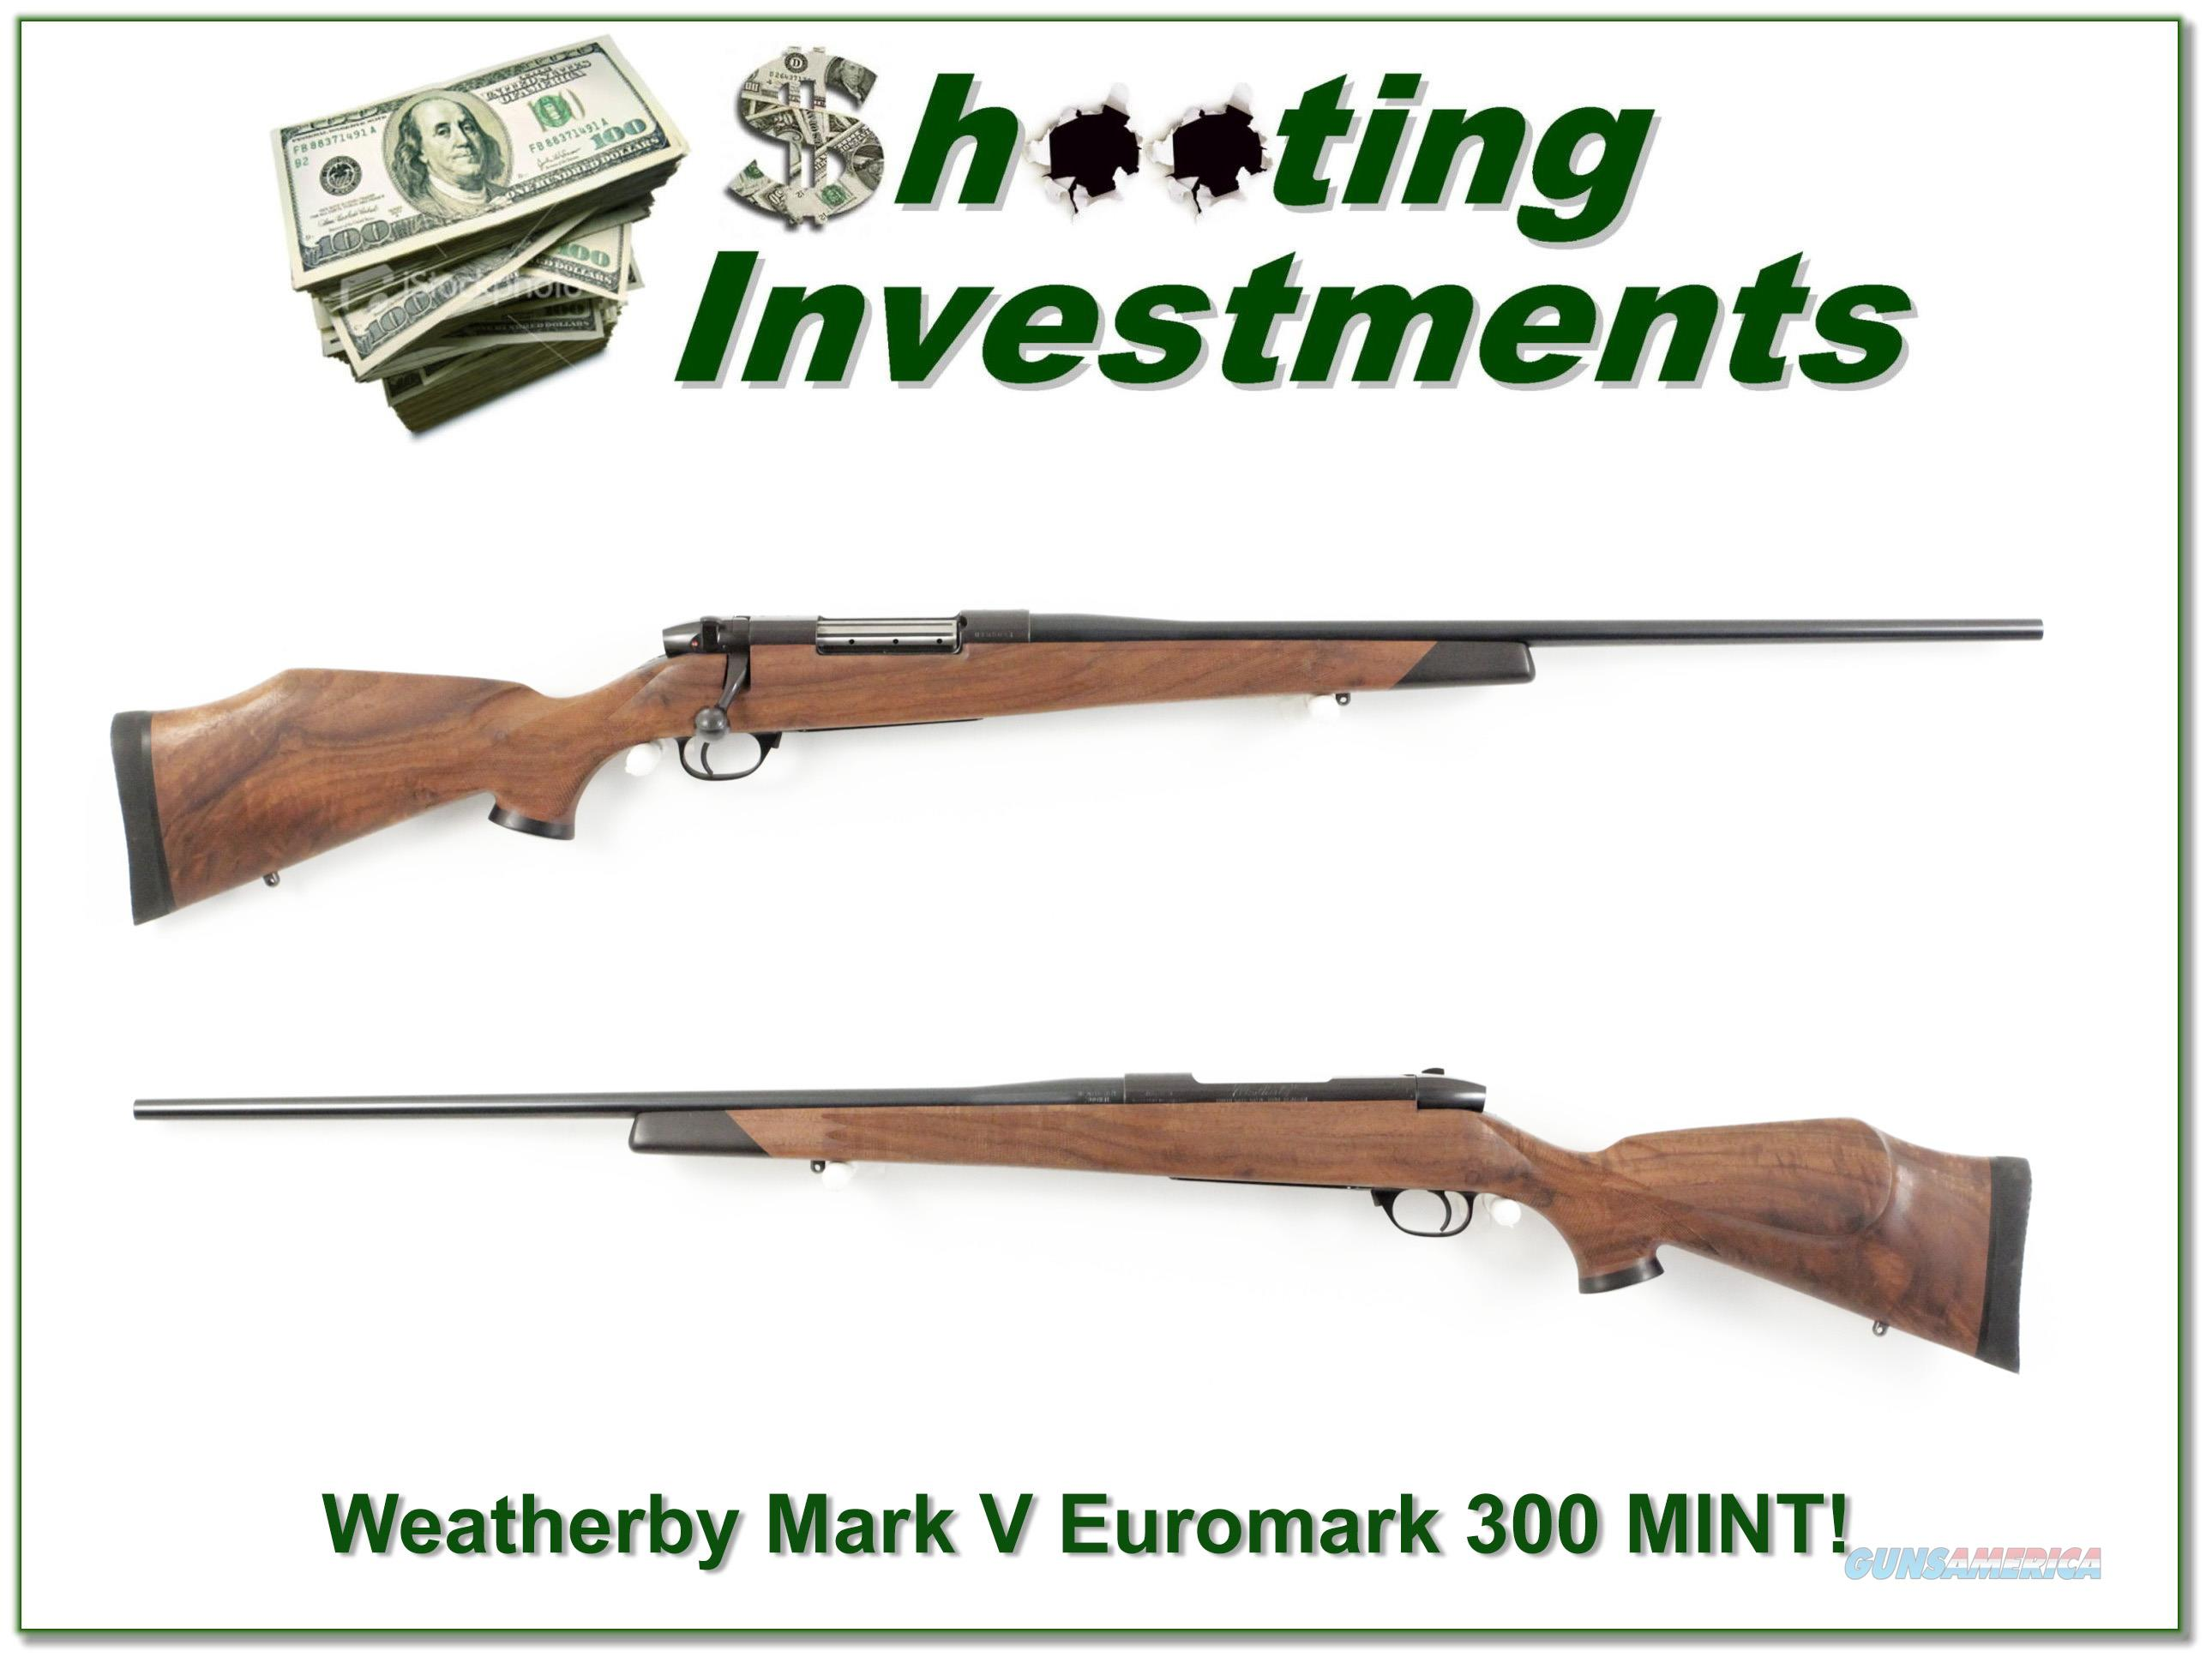 Weatherby Mark V Euromark 300 MINT XX Wood!  Guns > Rifles > Weatherby Rifles > Sporting